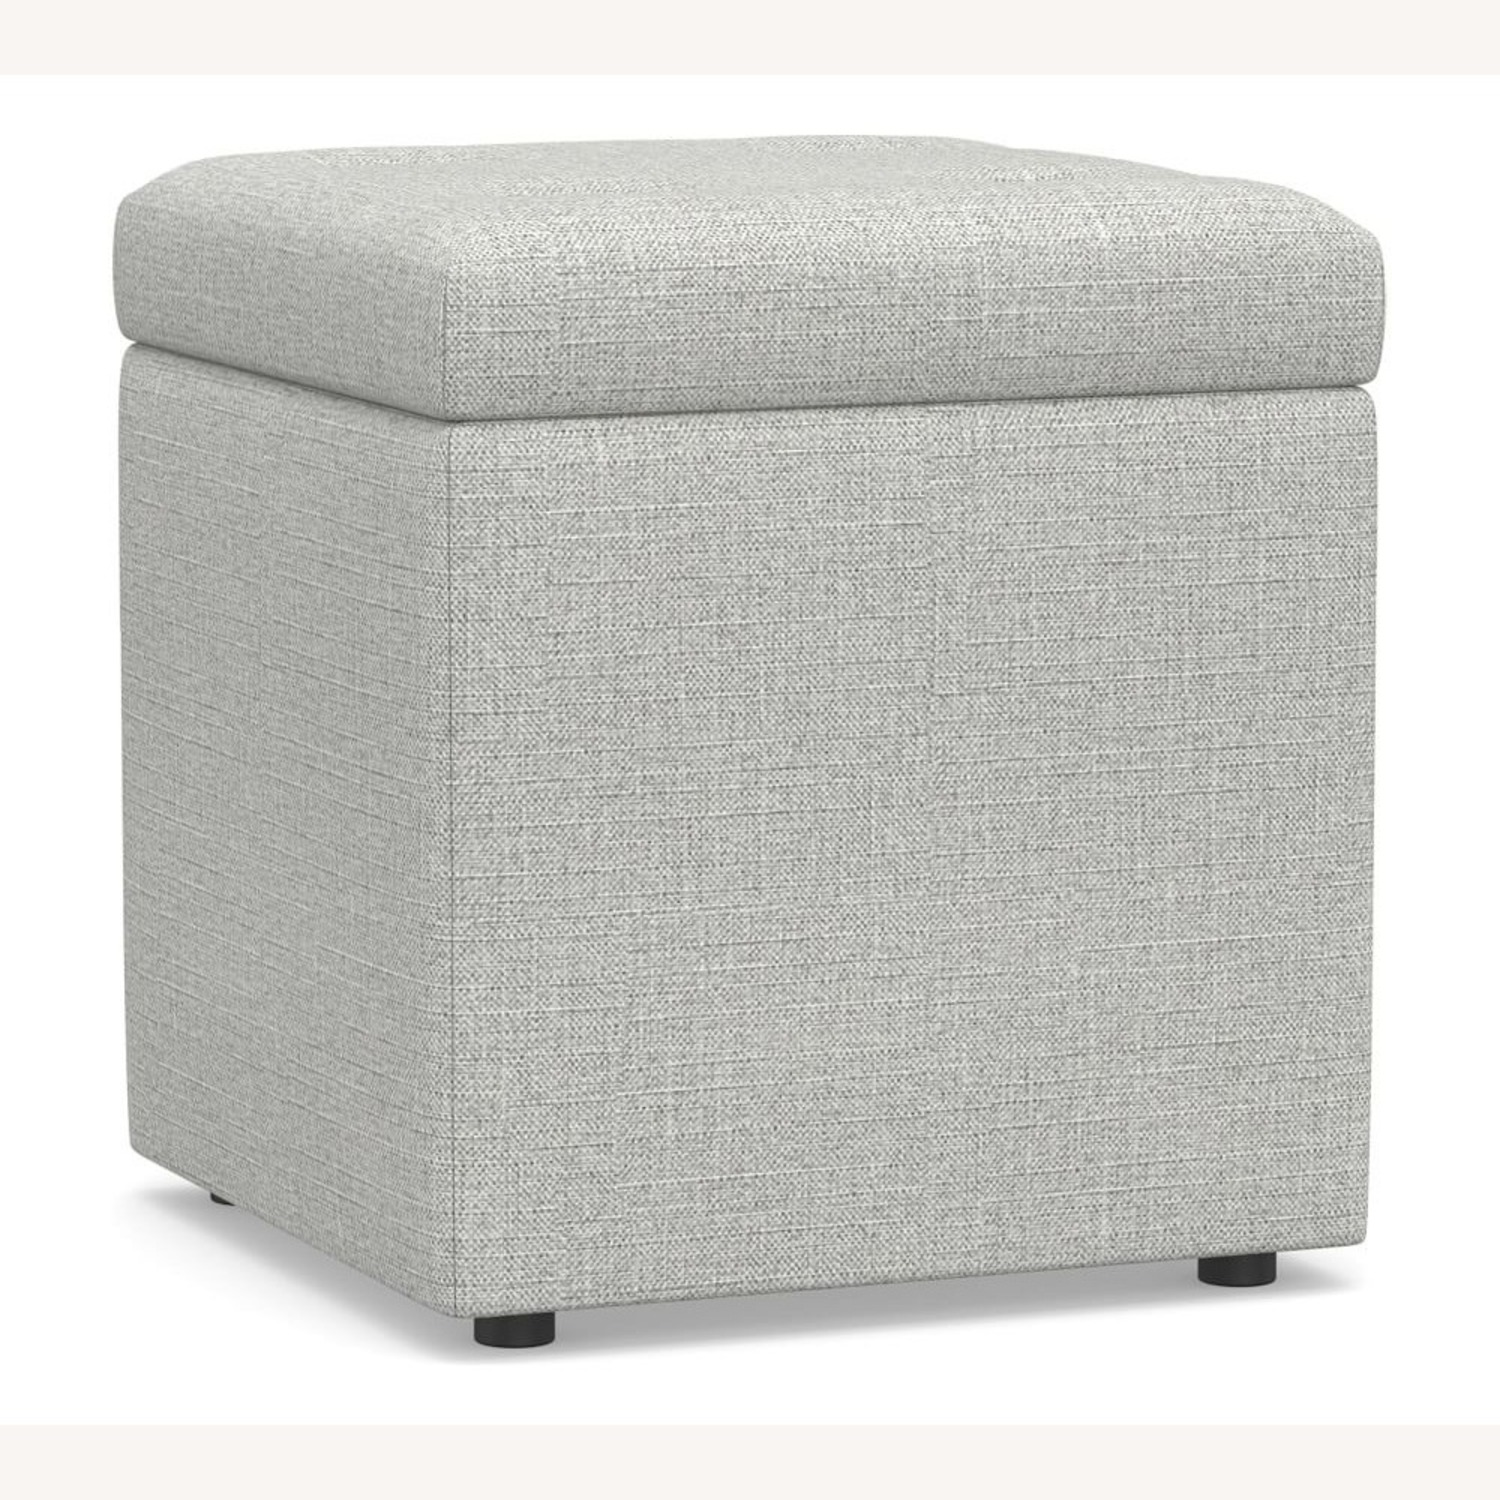 Pottery Barn Marlow Upholstered Storage Cube - image-2